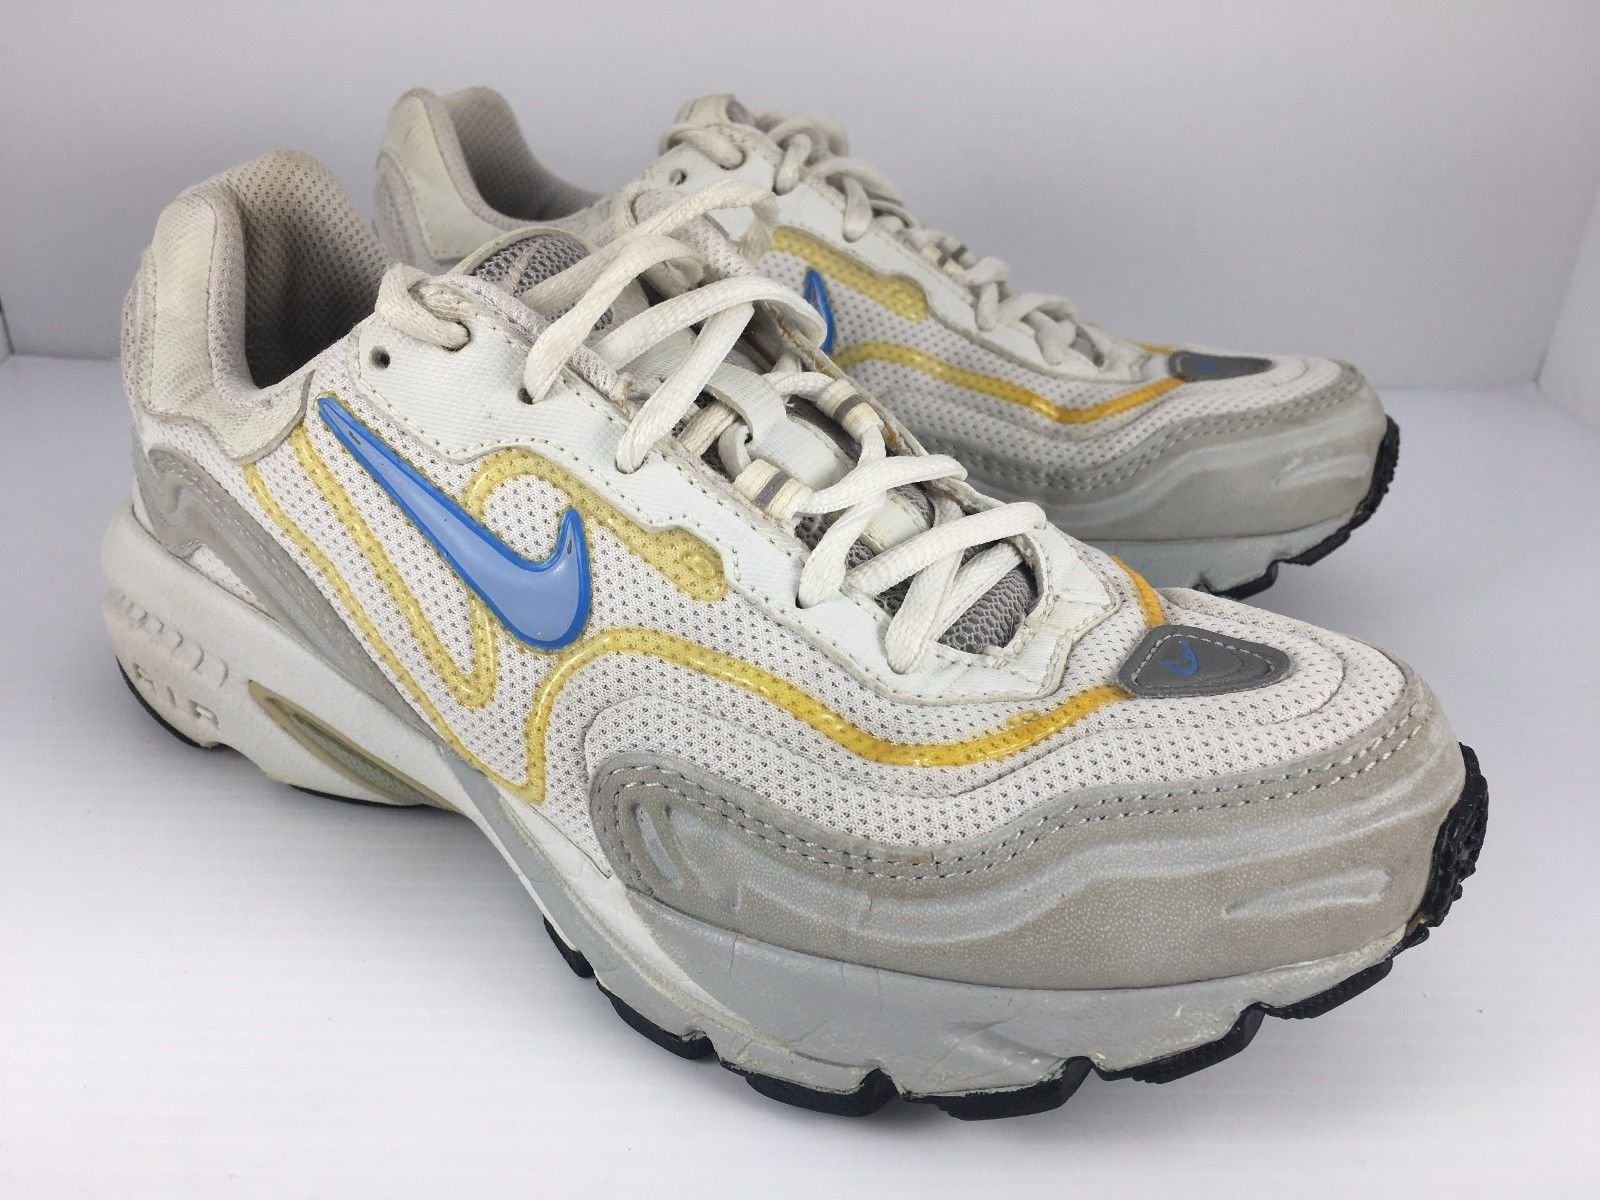 NIKE Air BRS 1000 Women US 6.5 White + Gray Athletic Trainers Running Shoes J23